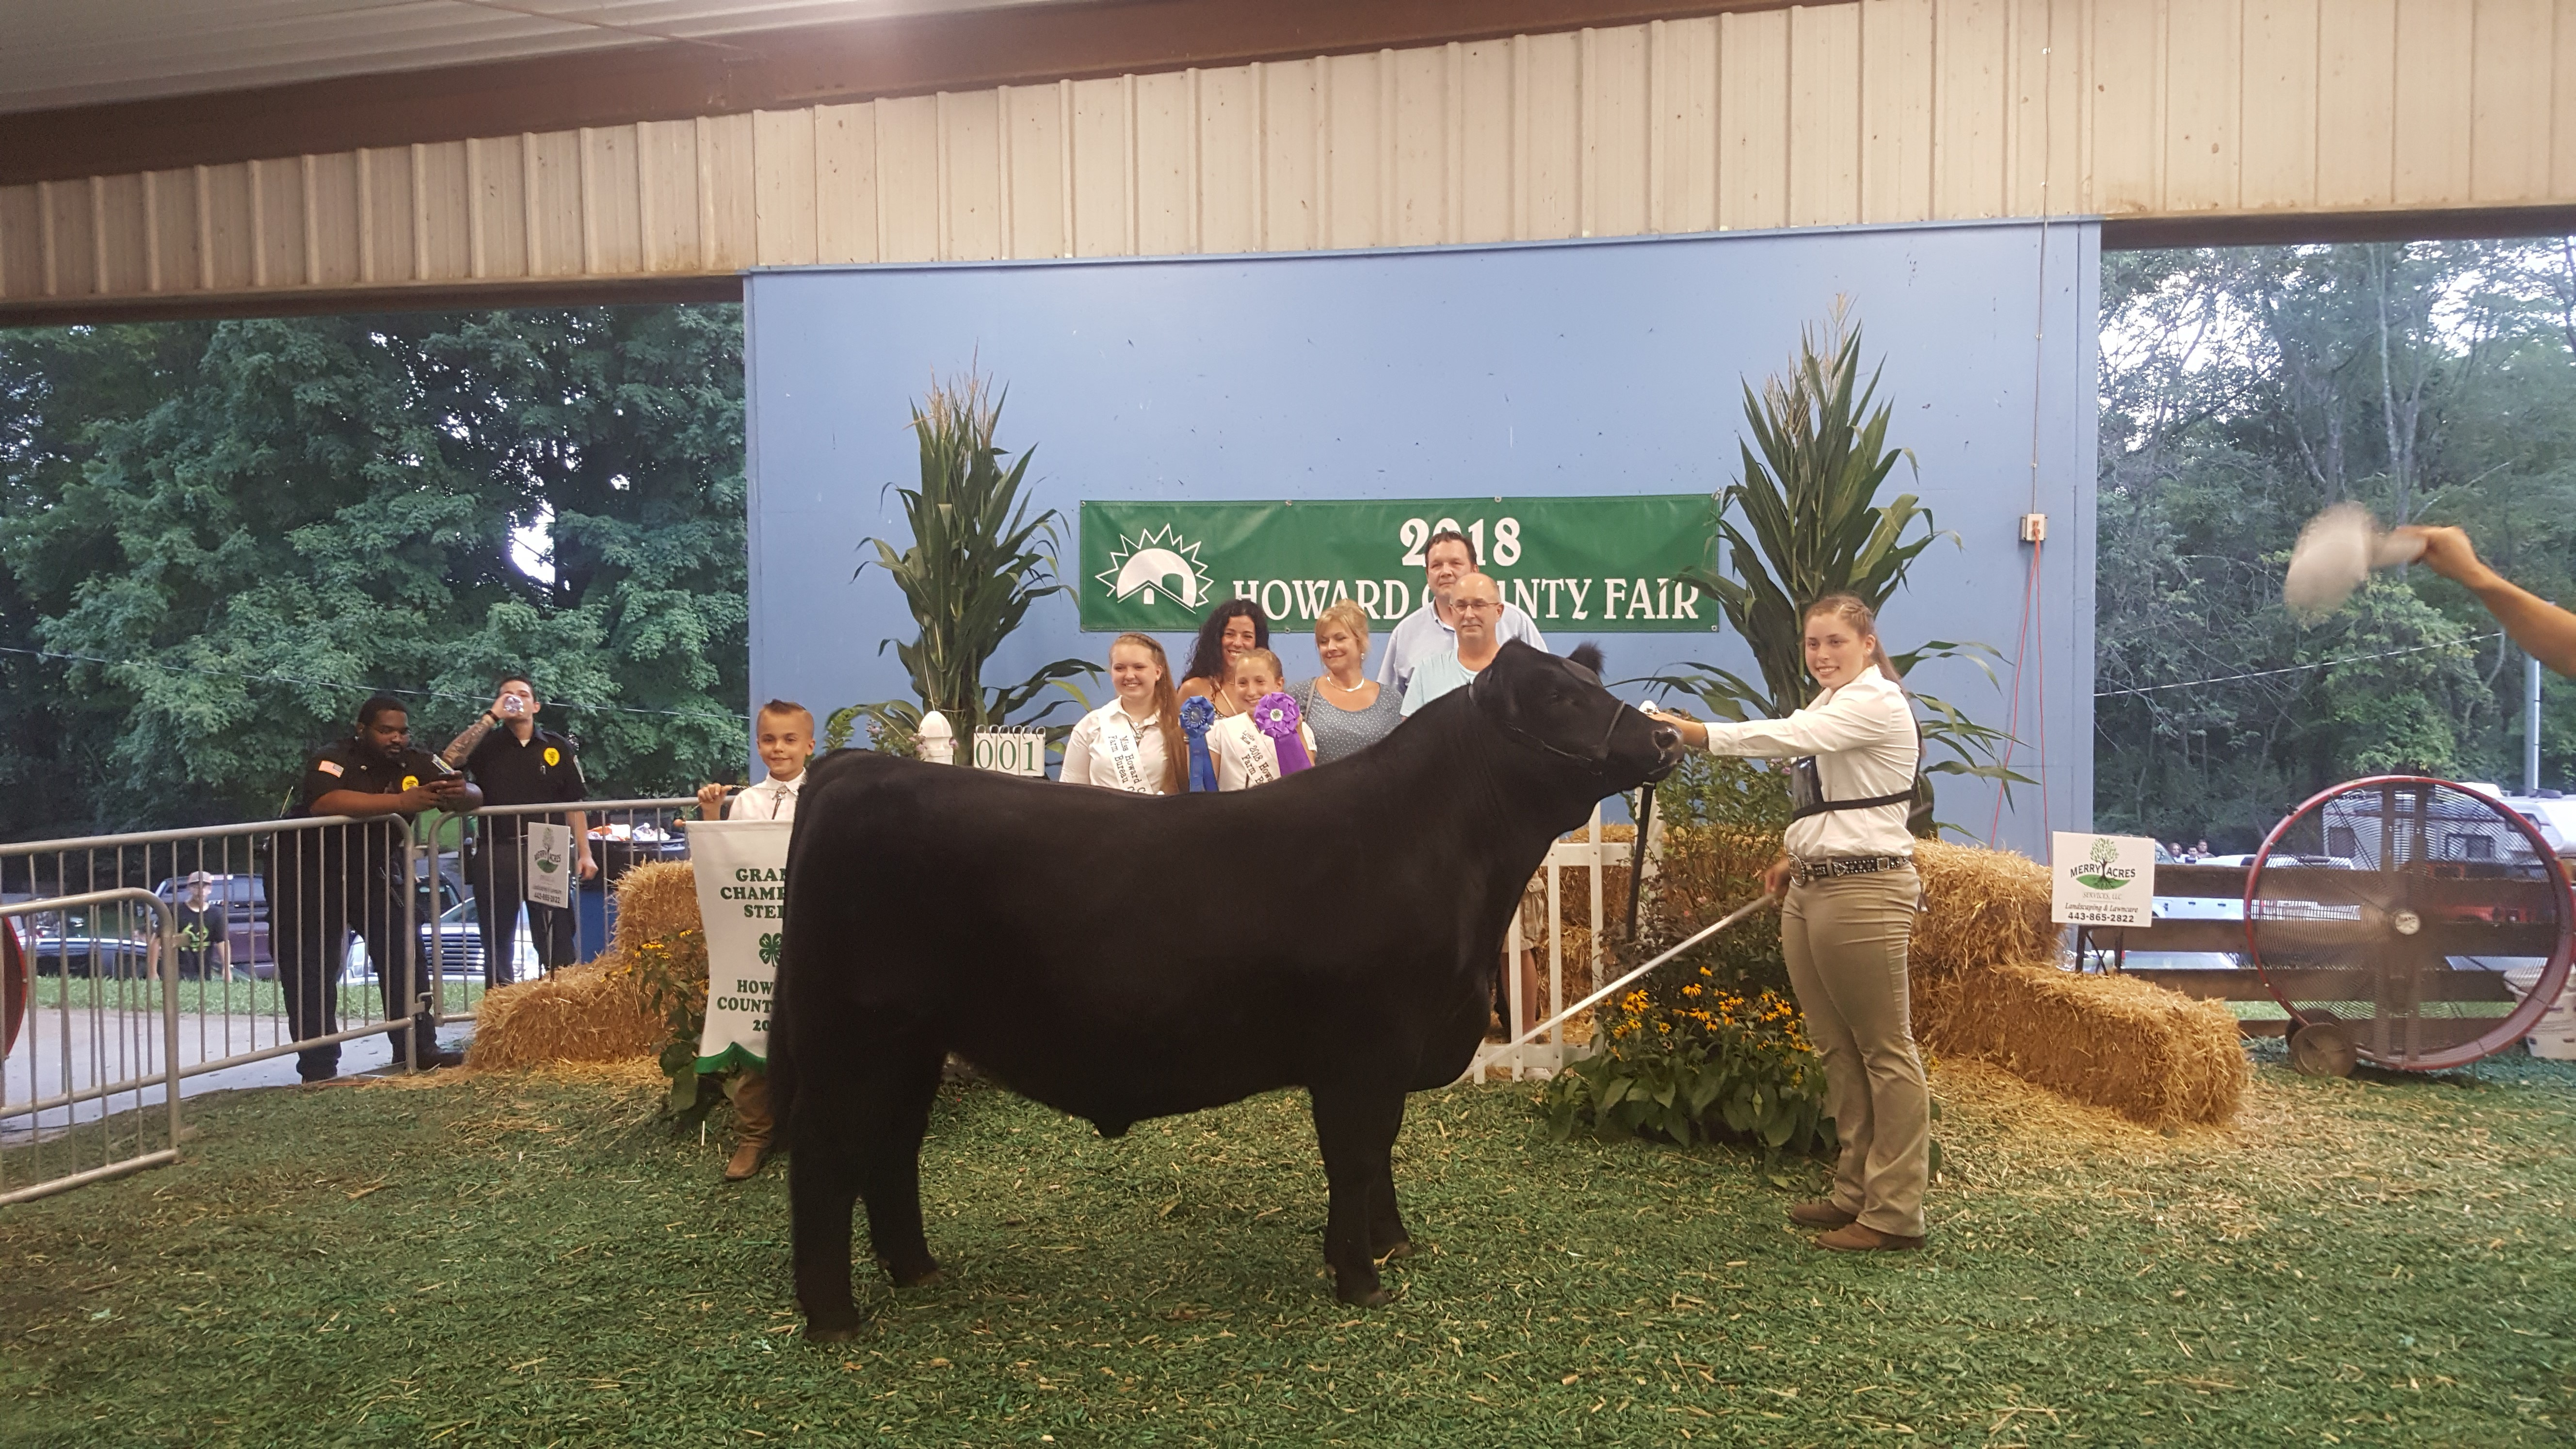 Meet The Howard County Grand Champion: Coming Soon To Store #348